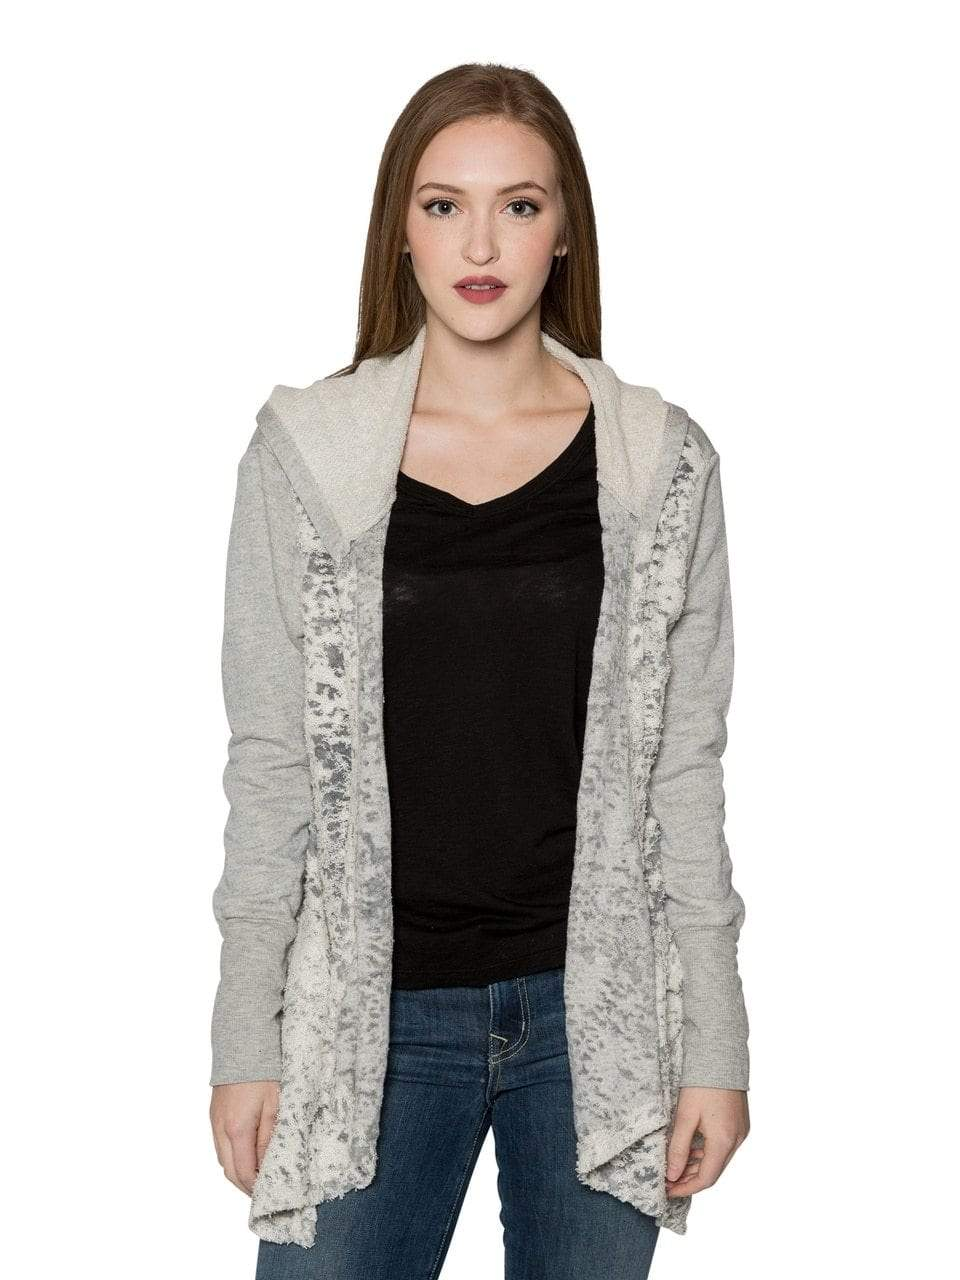 Valln Textured Hooded Cardigan